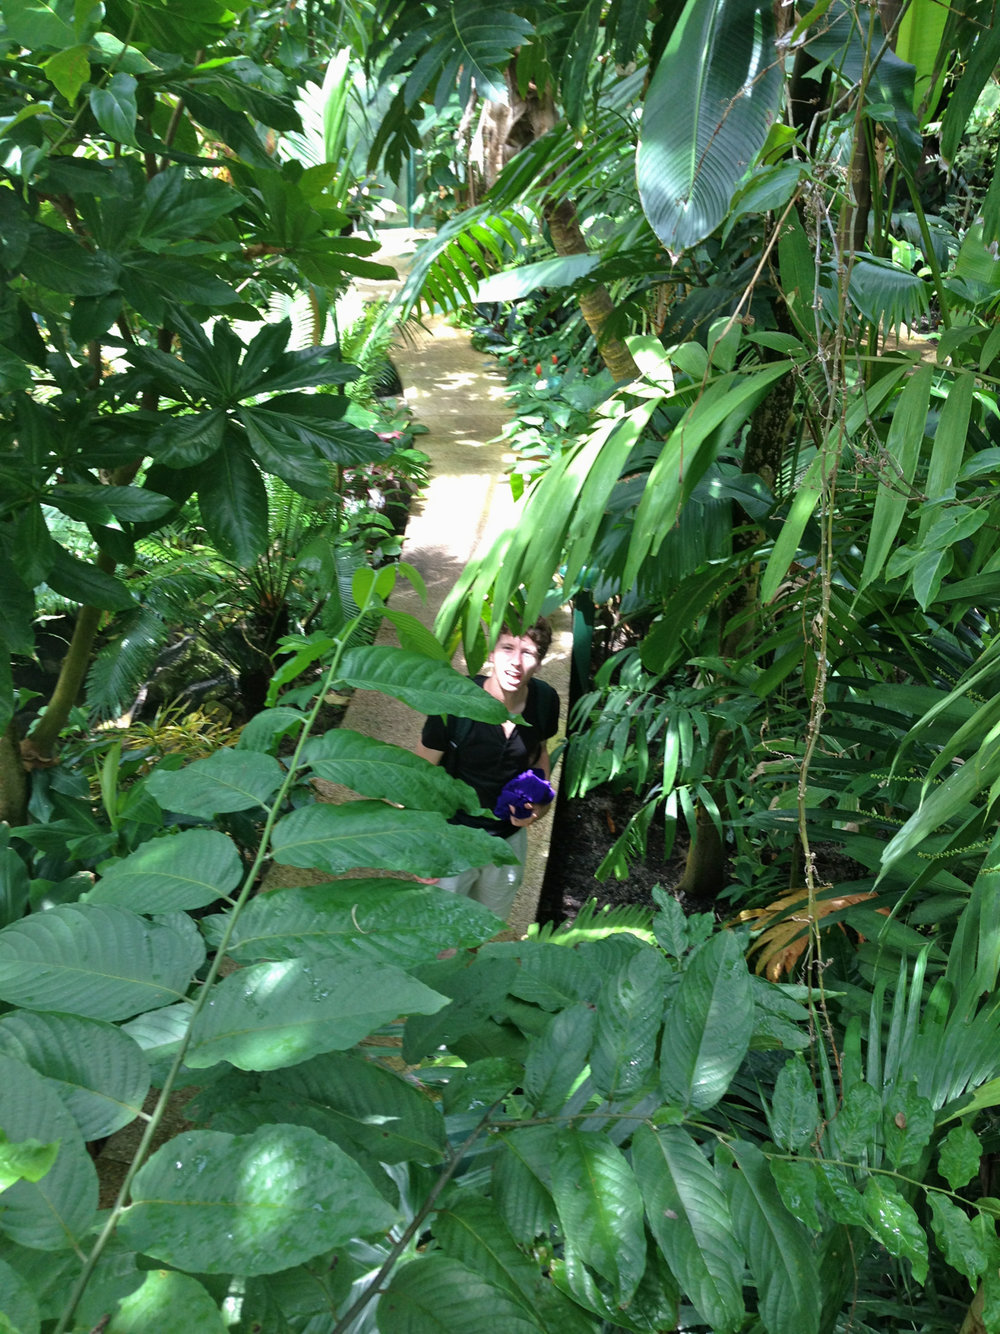 Feelin' lush in the rainforest pyramid.